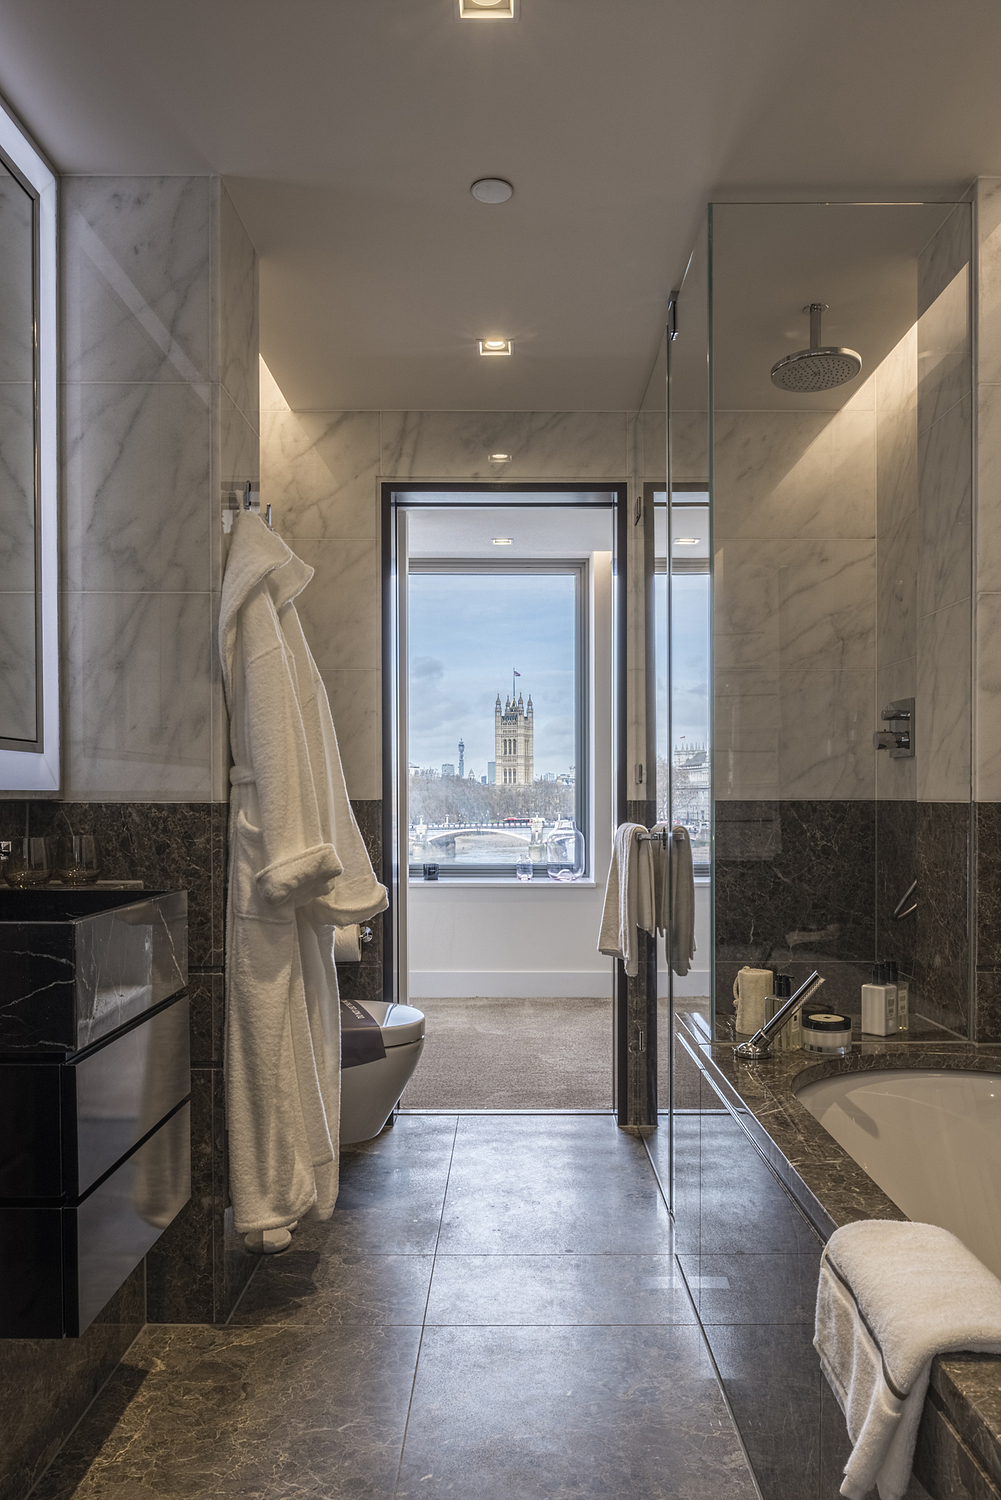 Bathroom detail with view of London